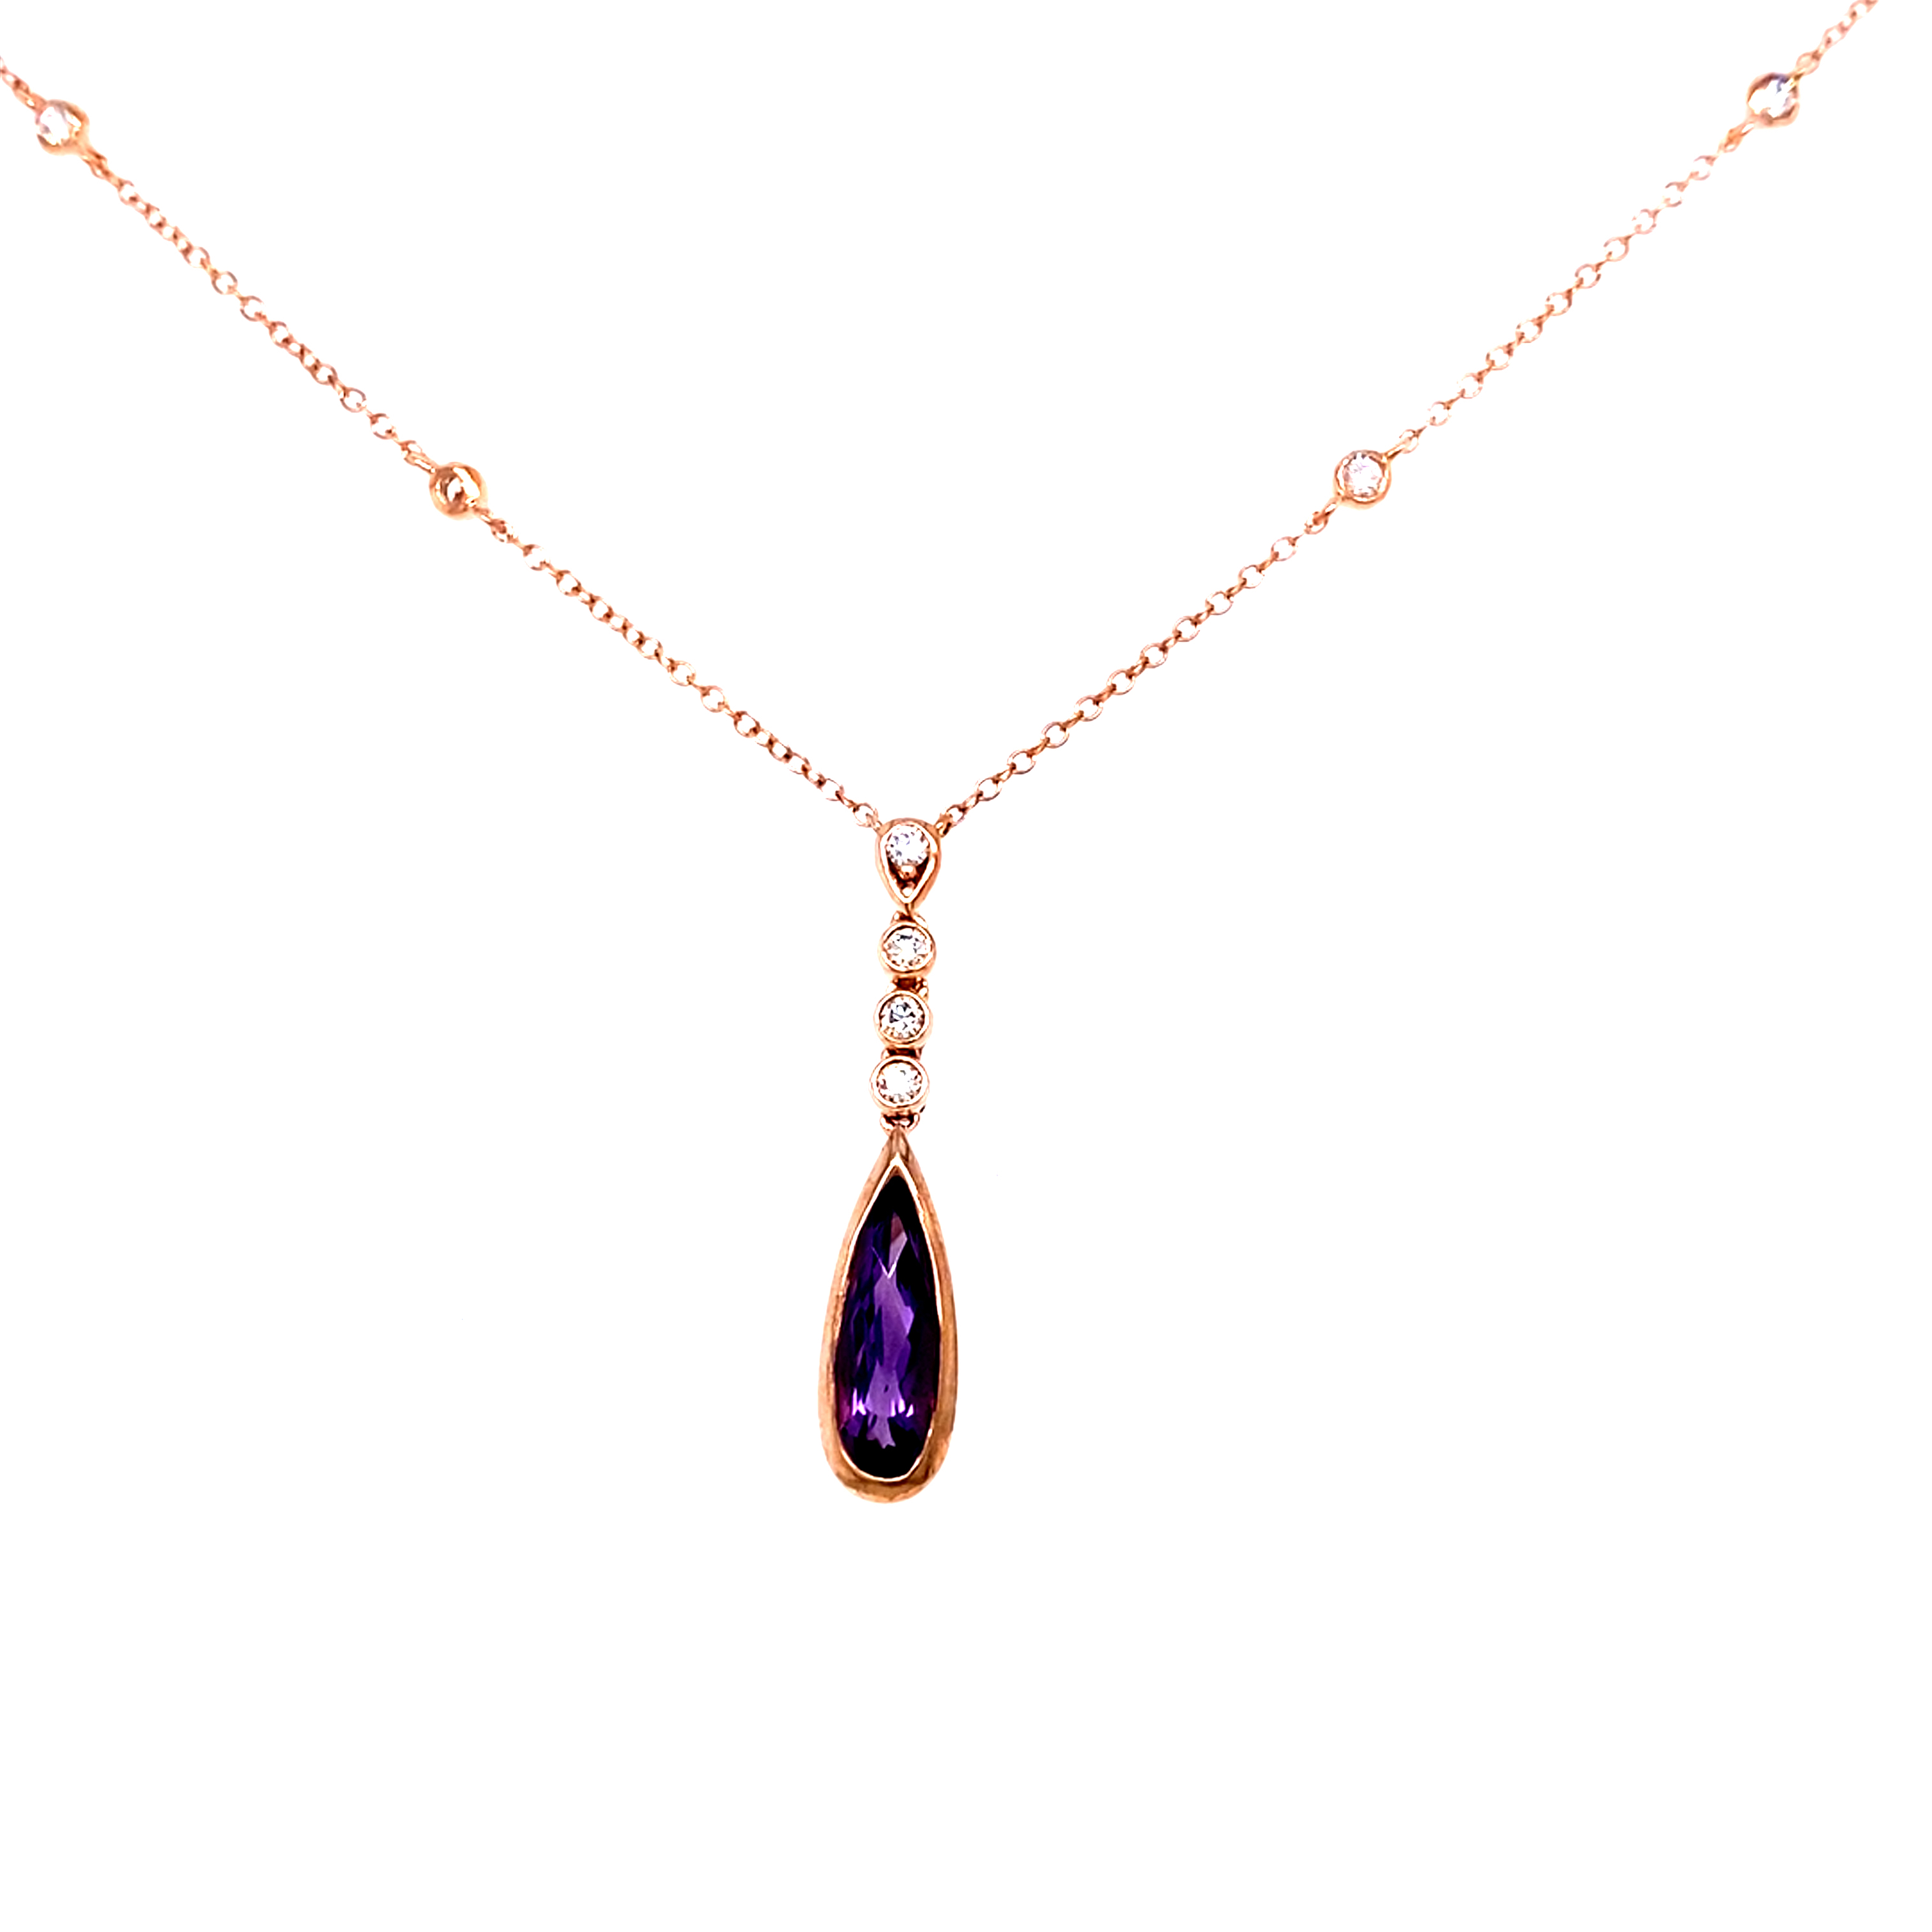 Beautiful Amethyst and diamond pendant in rose gold